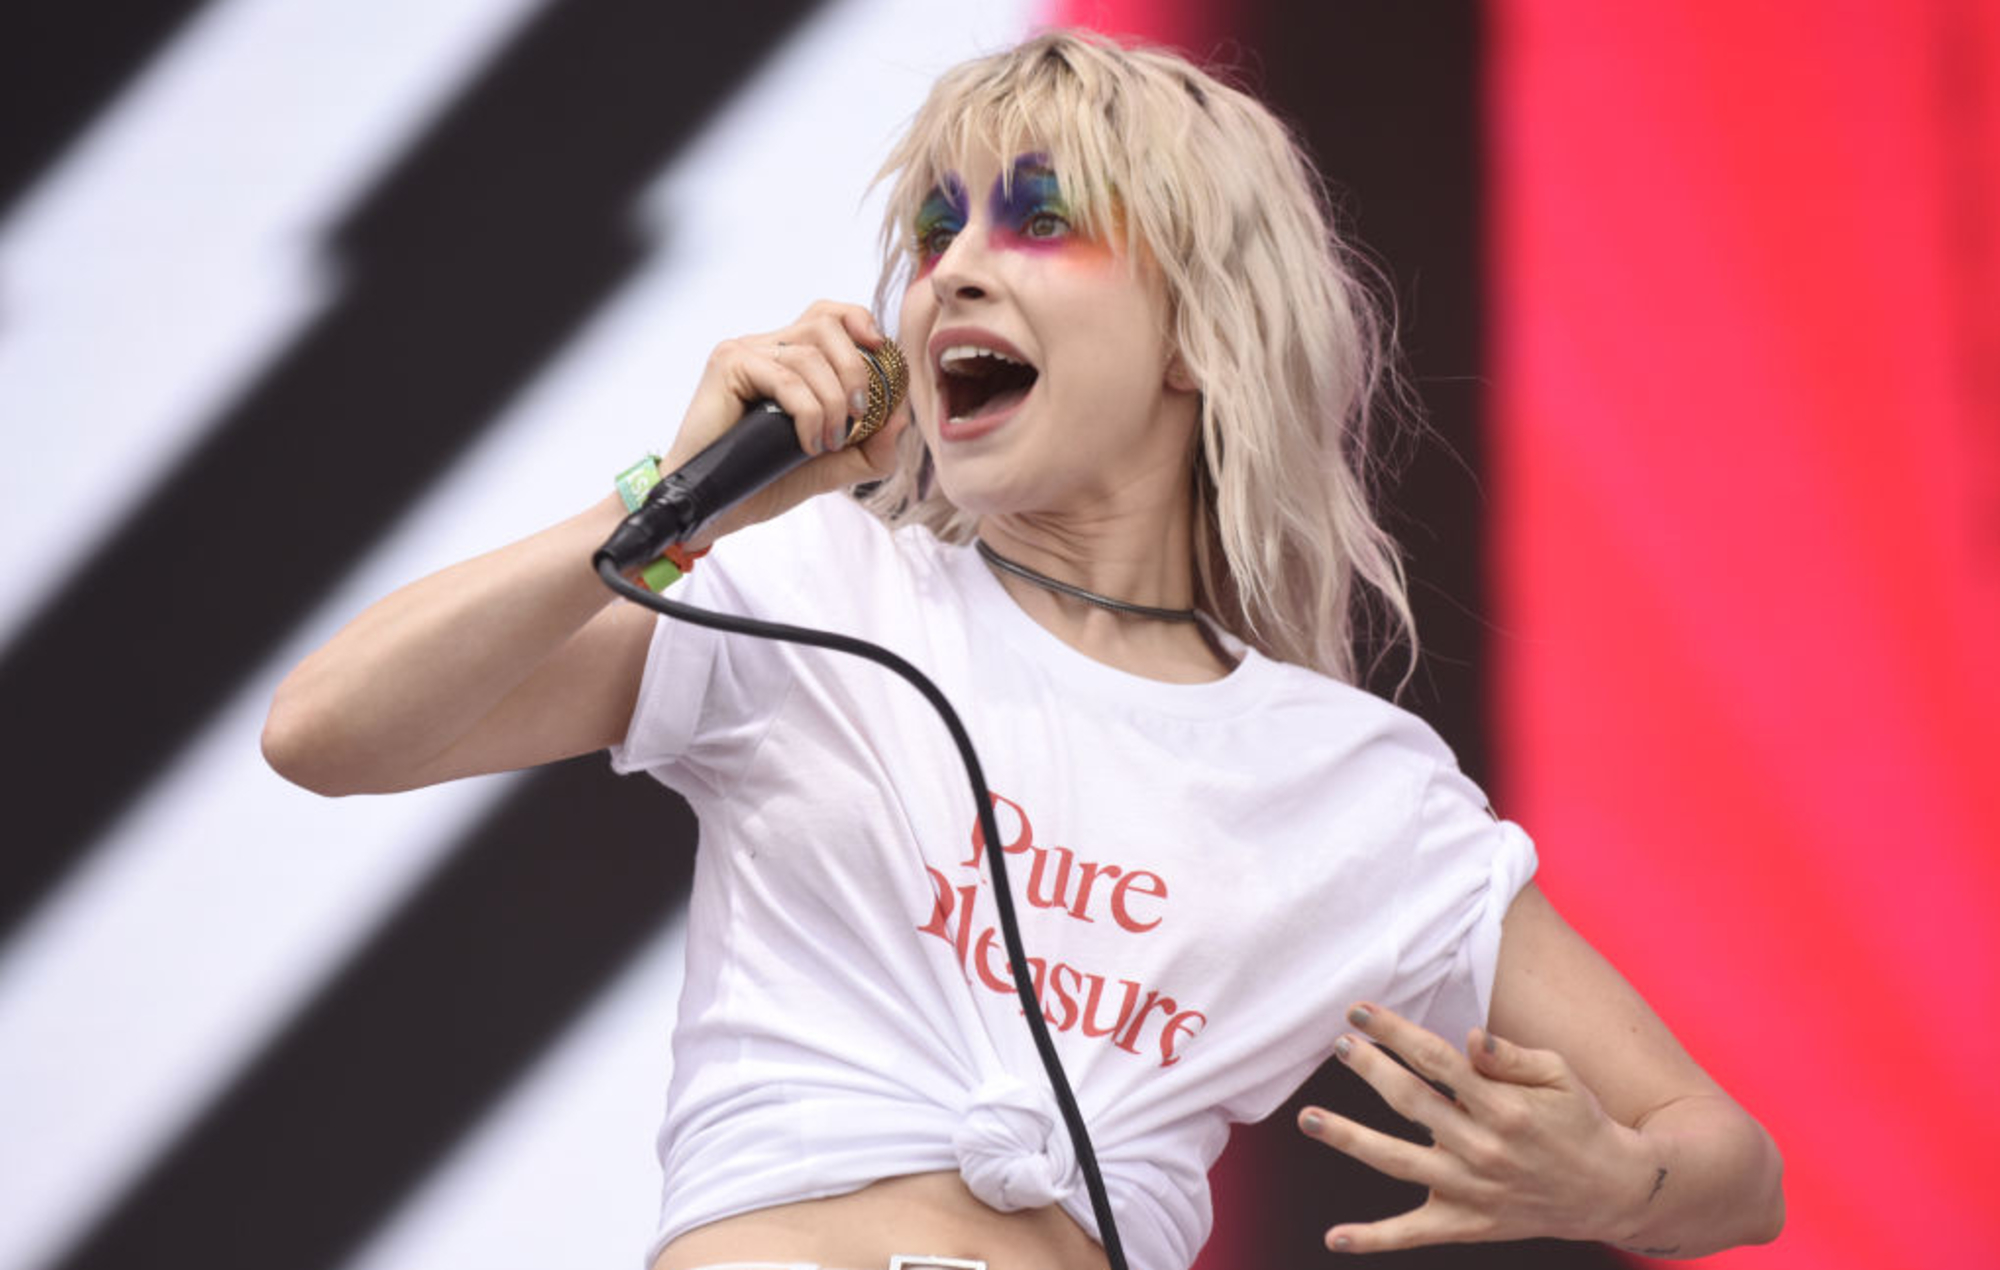 Paramore's Hayley Williams says she's releasing solo material in 2020 - EpicNews